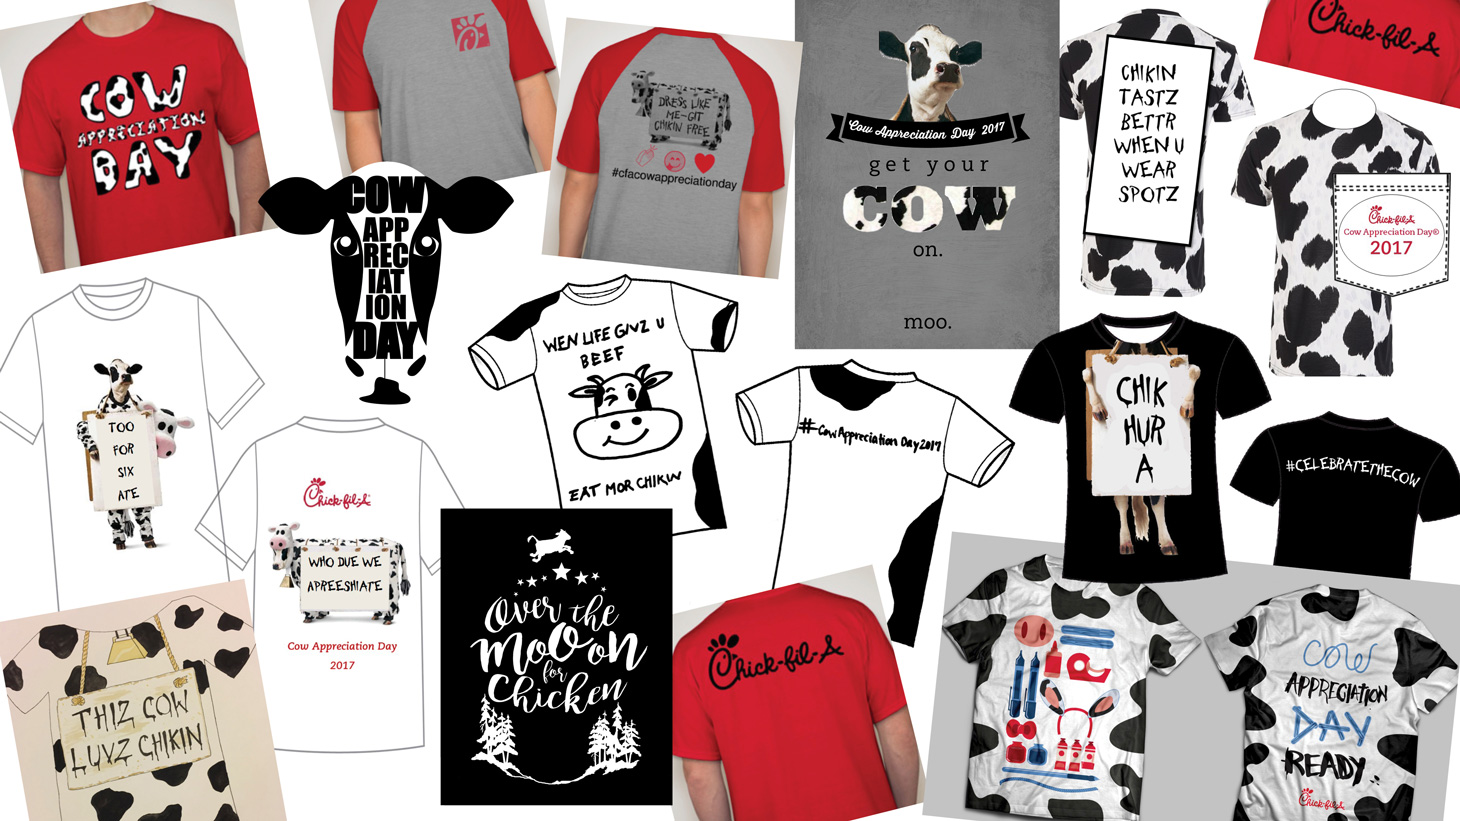 photograph about Cow Appreciation Day Printable Costume known as No cost entrees for cow-dressed prospective buyers Chick-fil-A